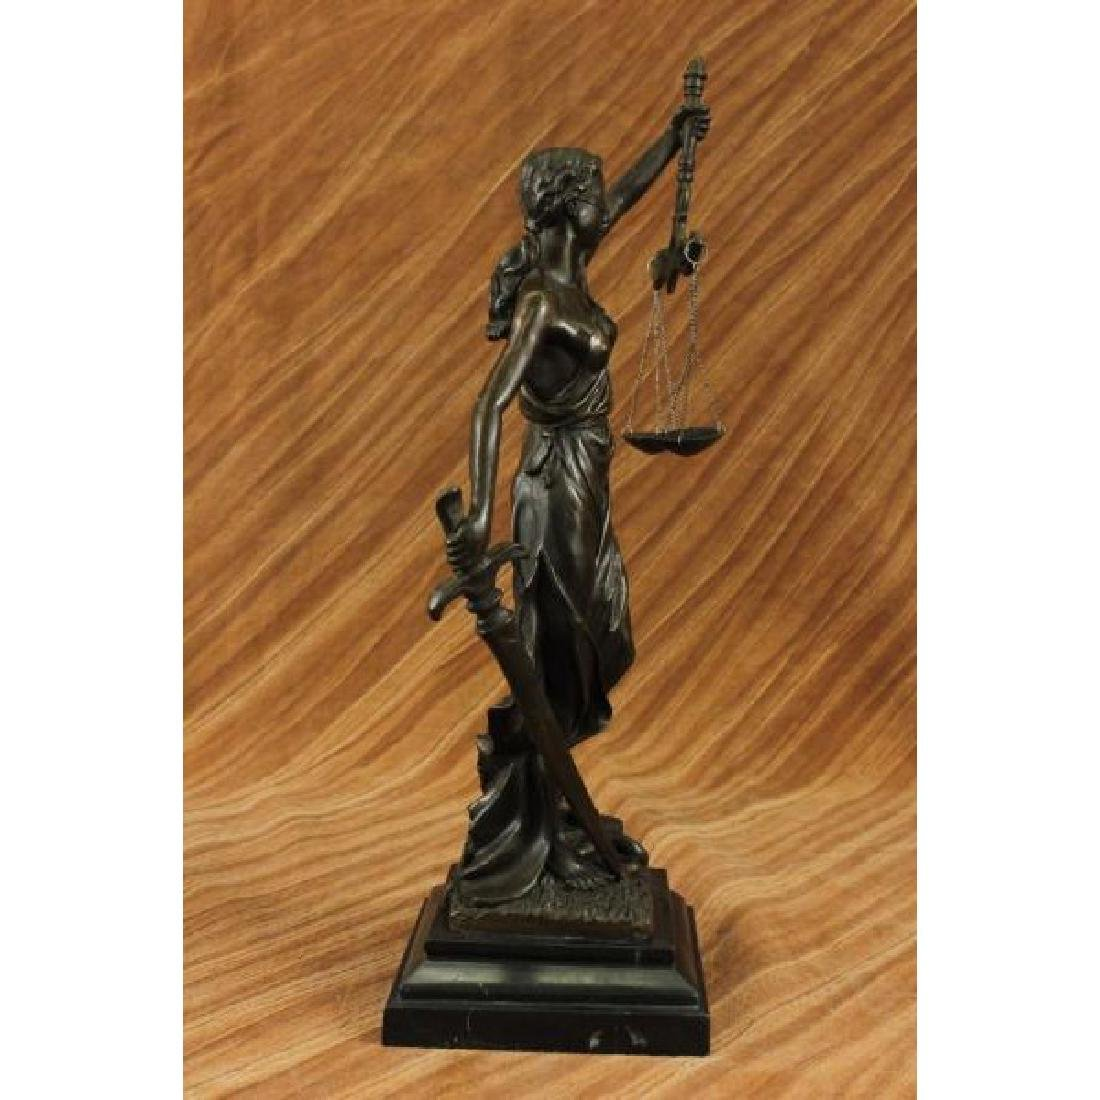 Blind Justice - Scale of Justice Bronze Sculpture - 4